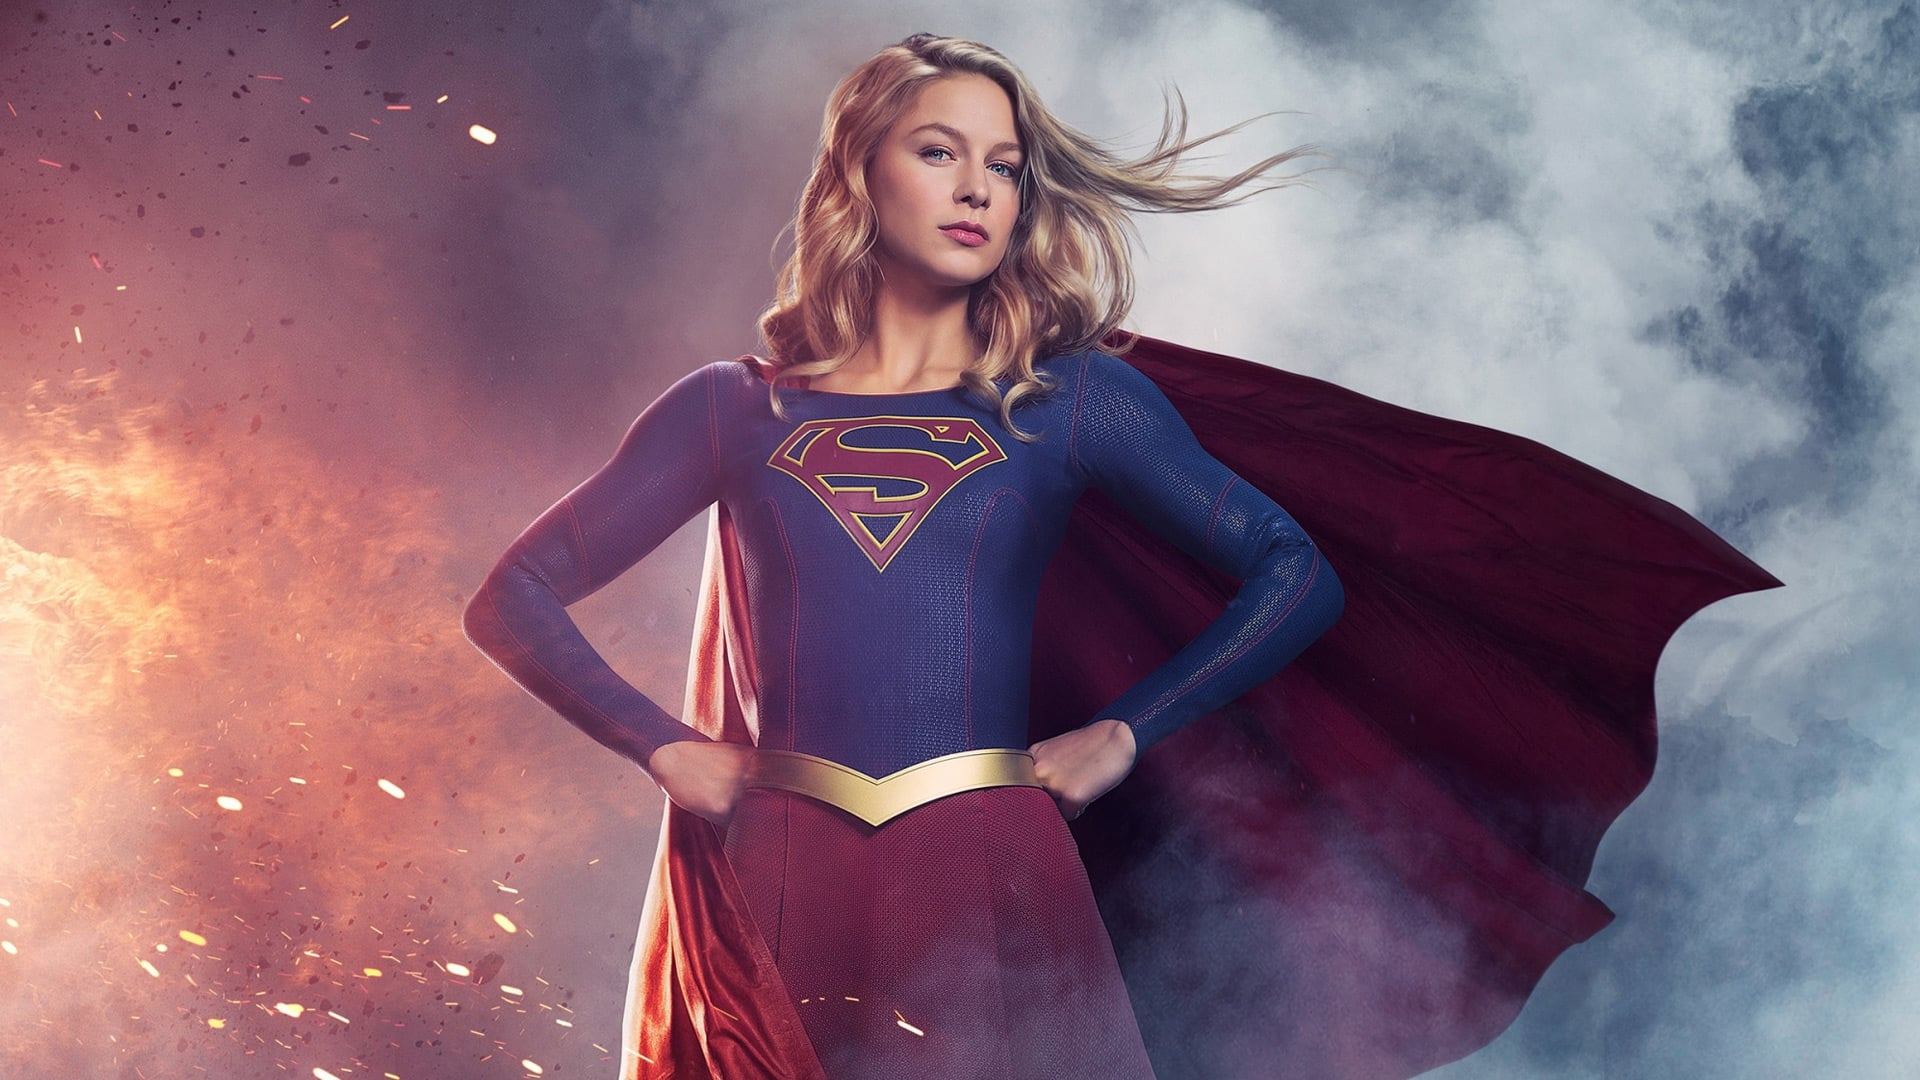 Final season Supergirl to start in March, Superman & Lois goes on hiatus